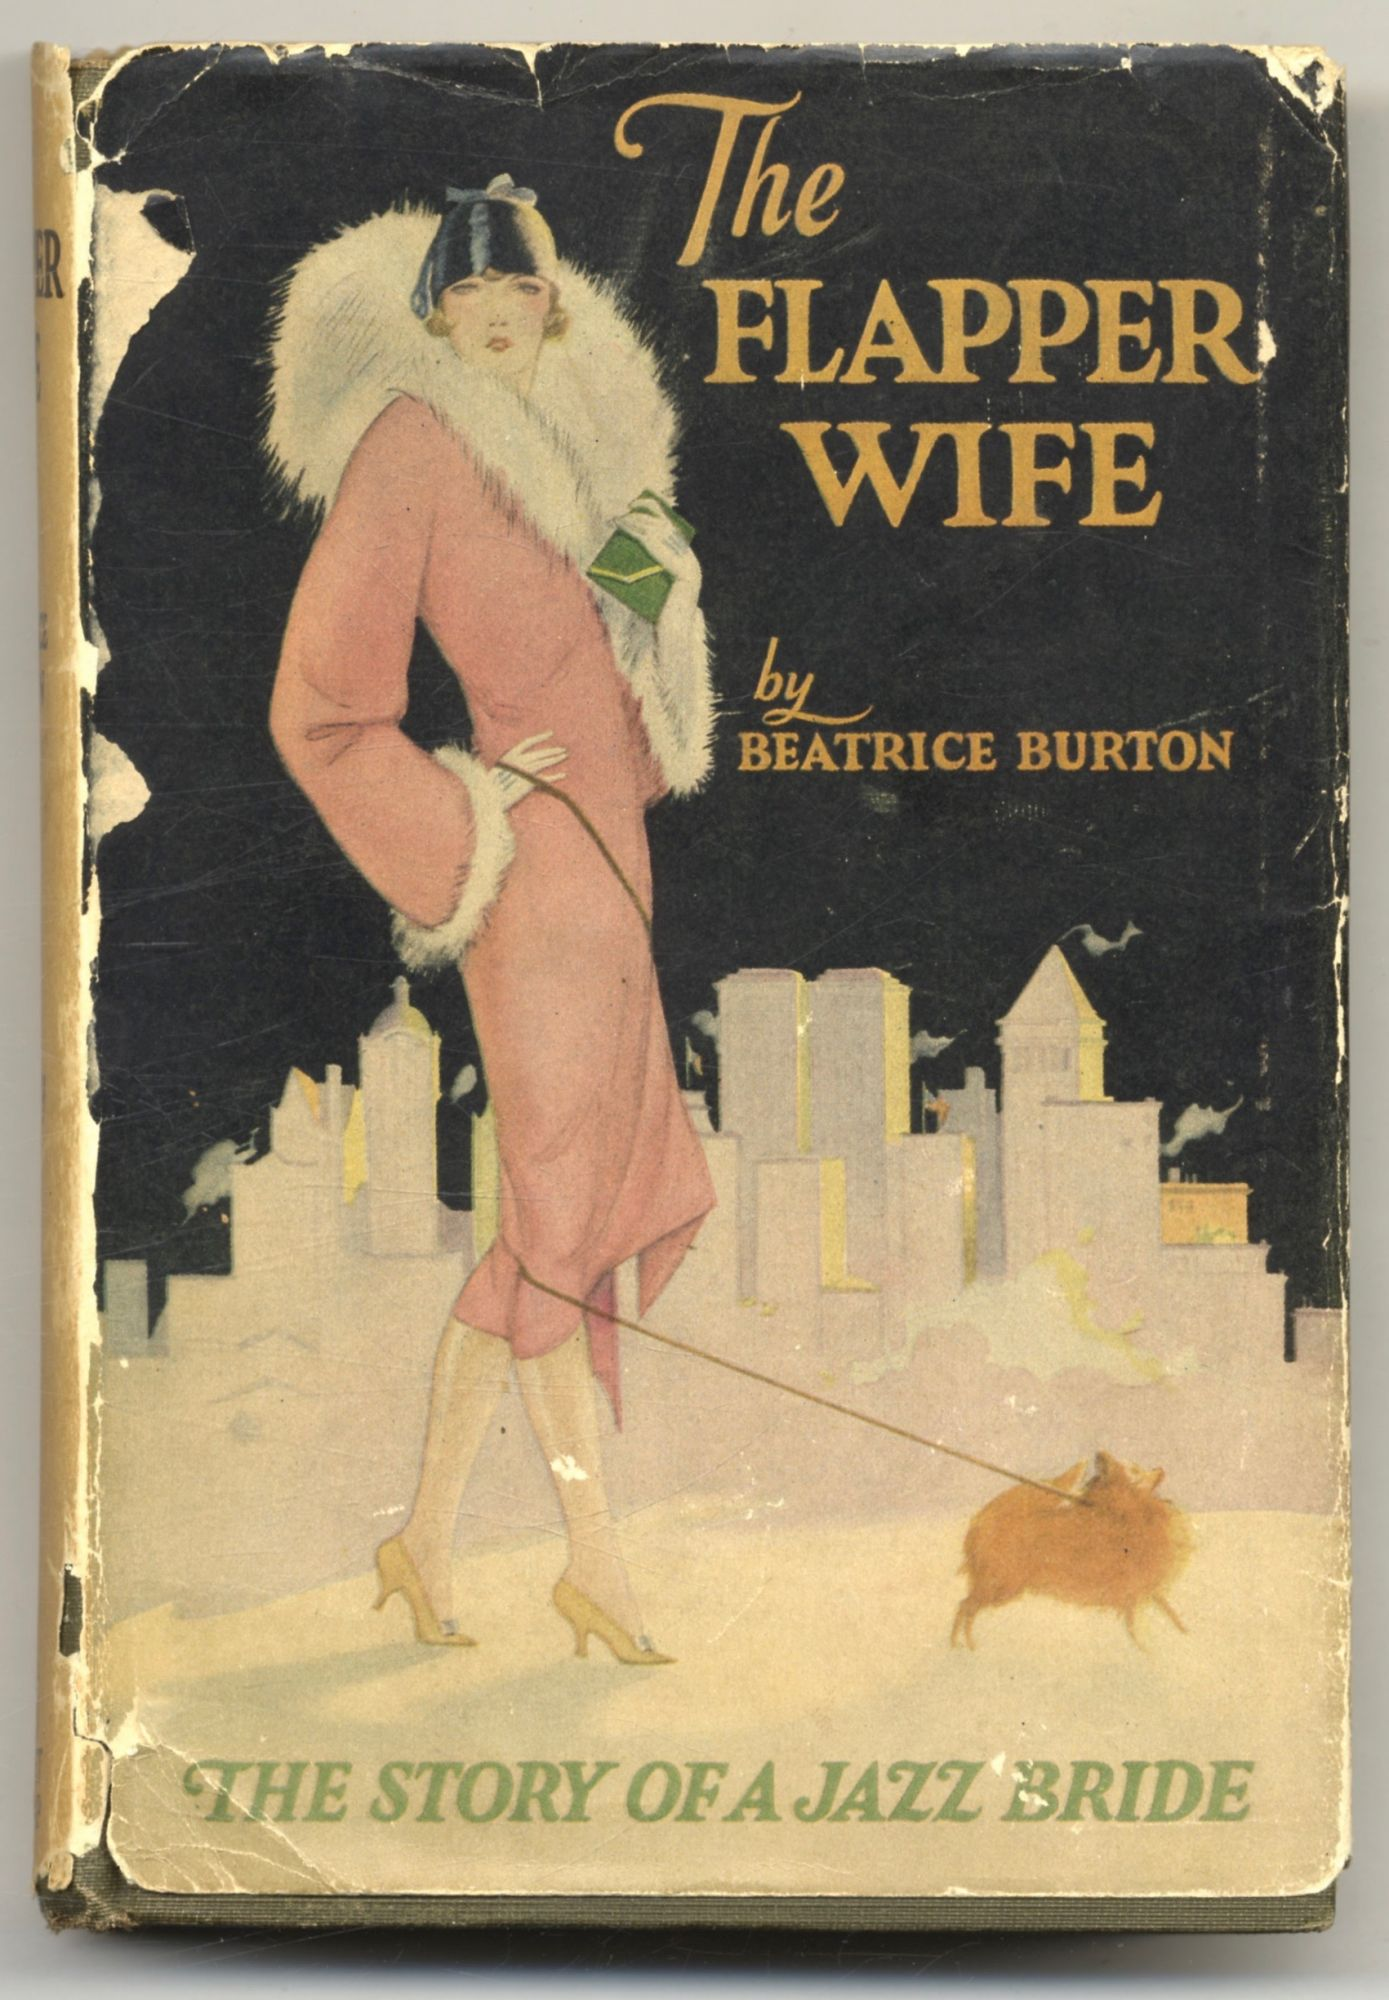 The Flapper Wife, The Story Of A Jazz Bride. Beatrice Burton, Morgan.